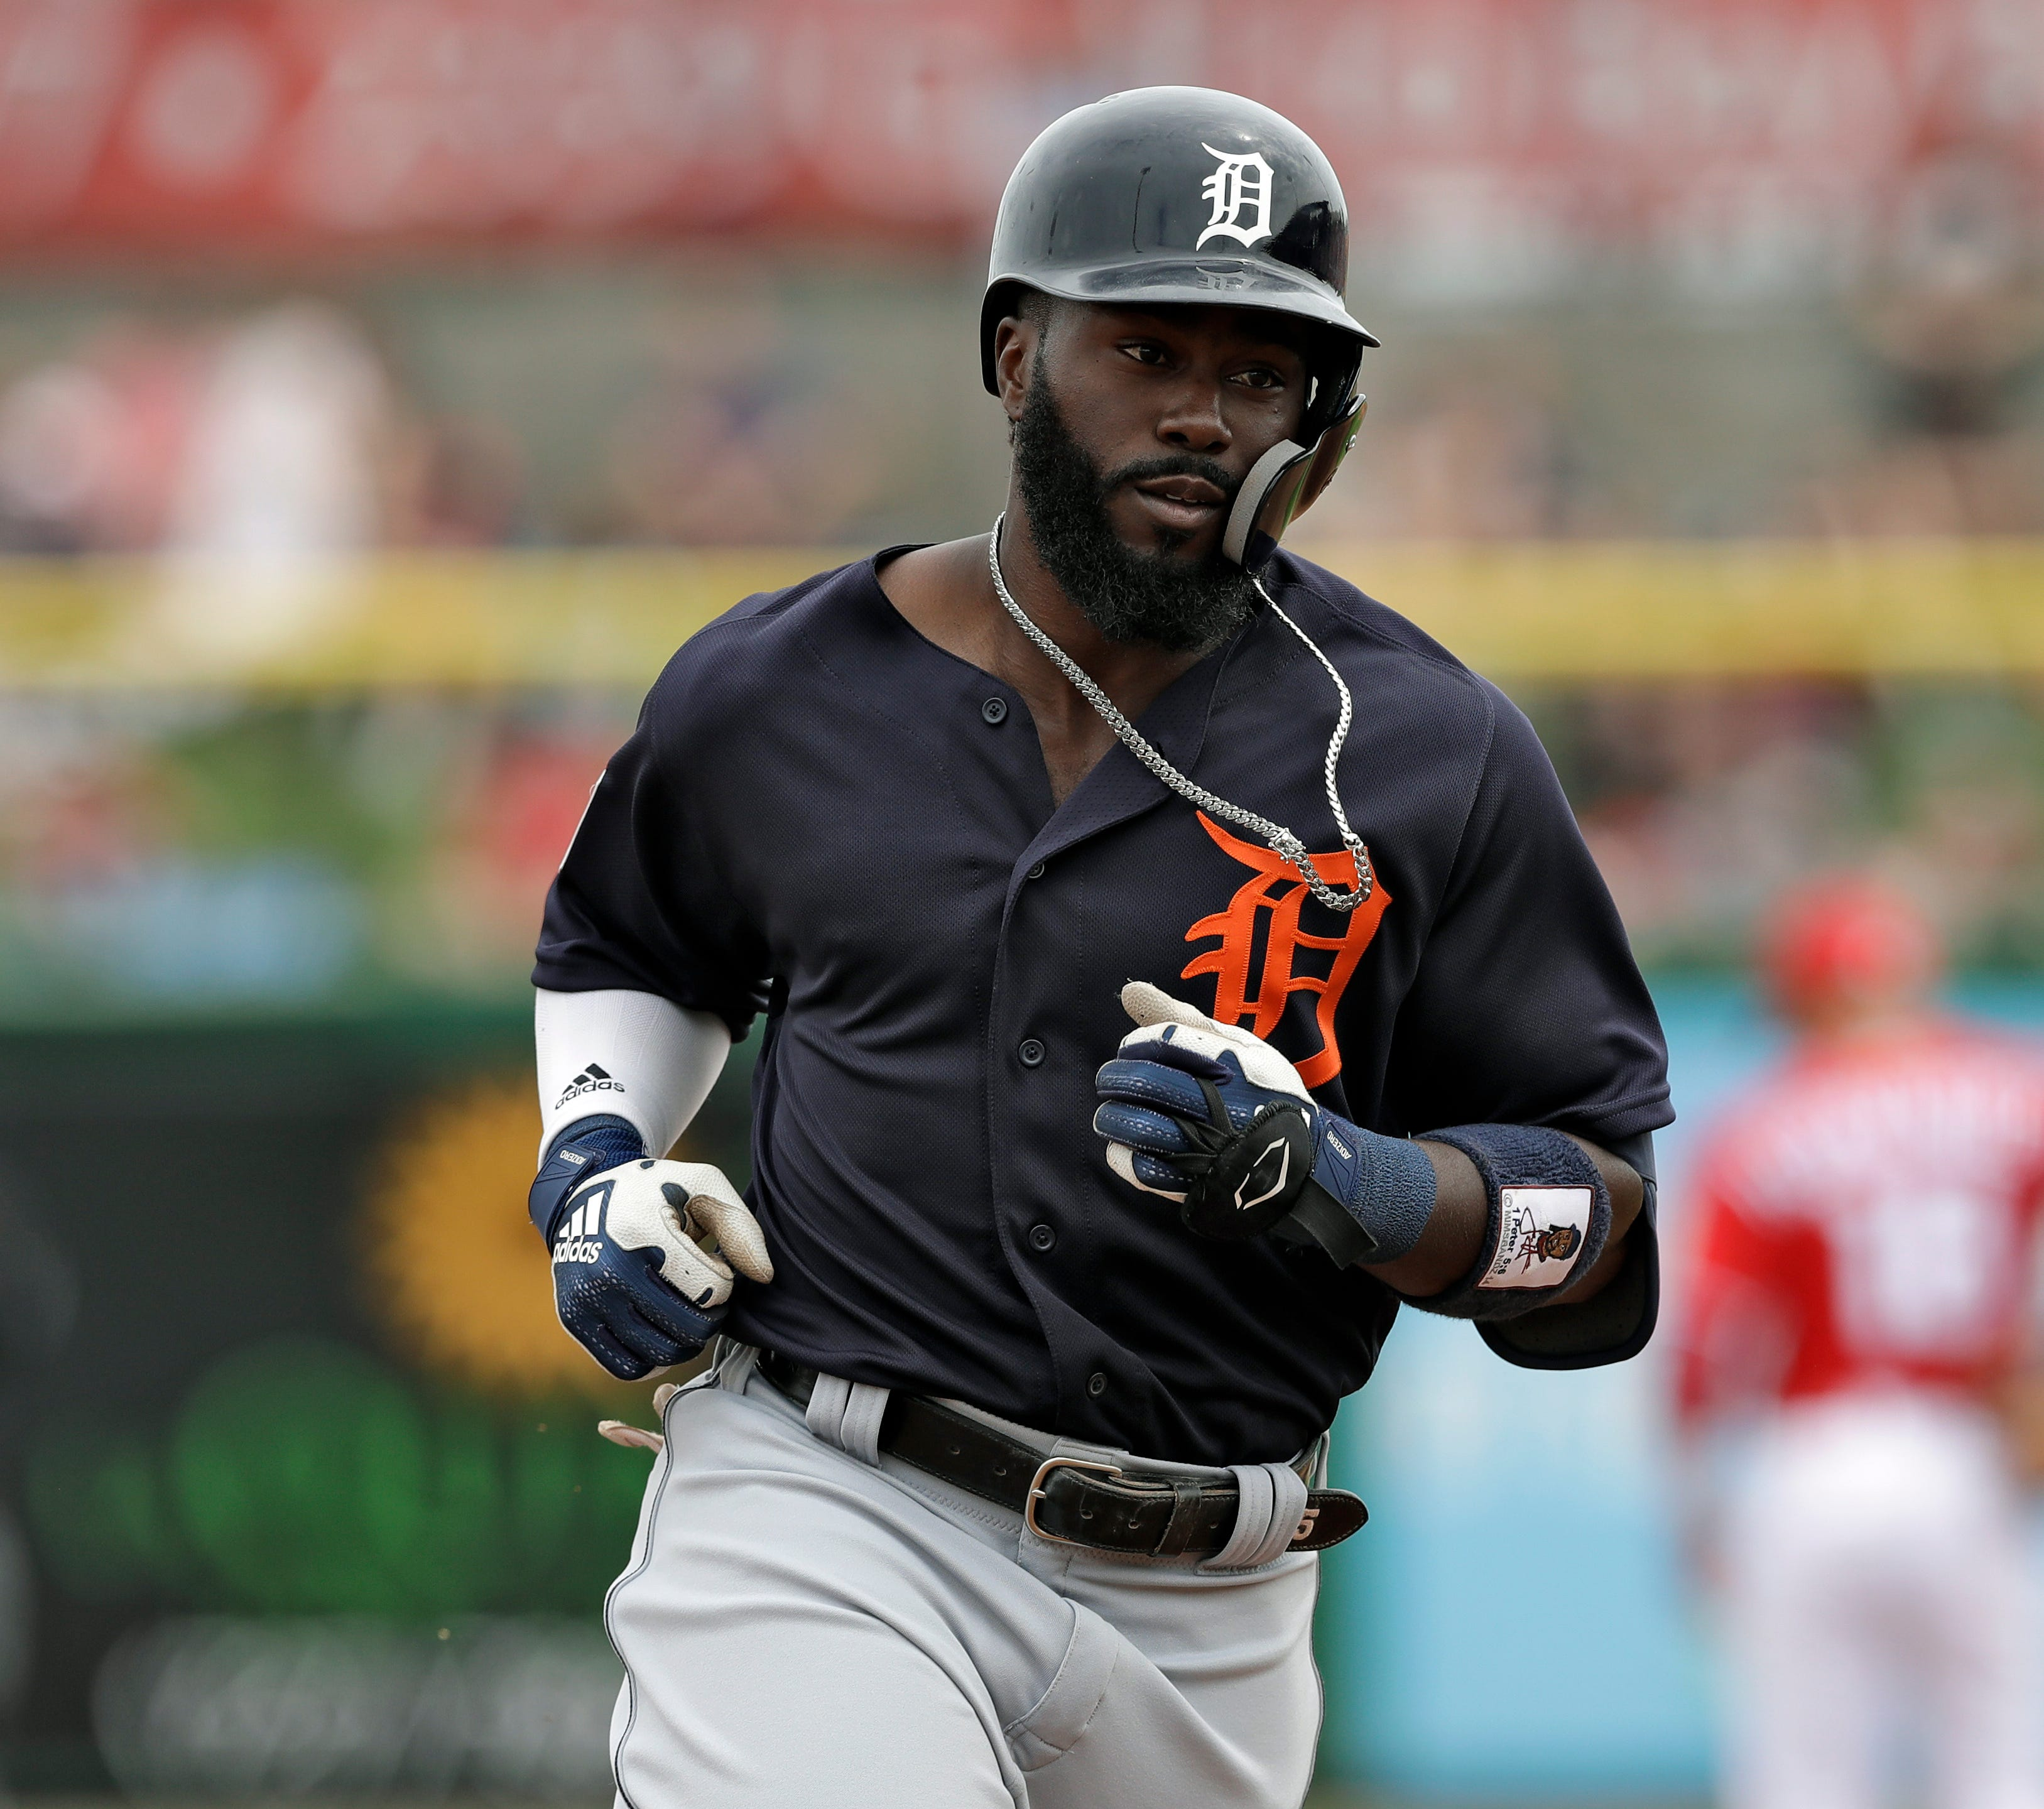 Tigers second baseman Josh Harrison runs around the bases after his home run off Philadelphia Phillies starting pitcher Nick Pivetta during the third inning of a spring training baseball game Wednesday, March 20, 2019, in Clearwater, Fla.